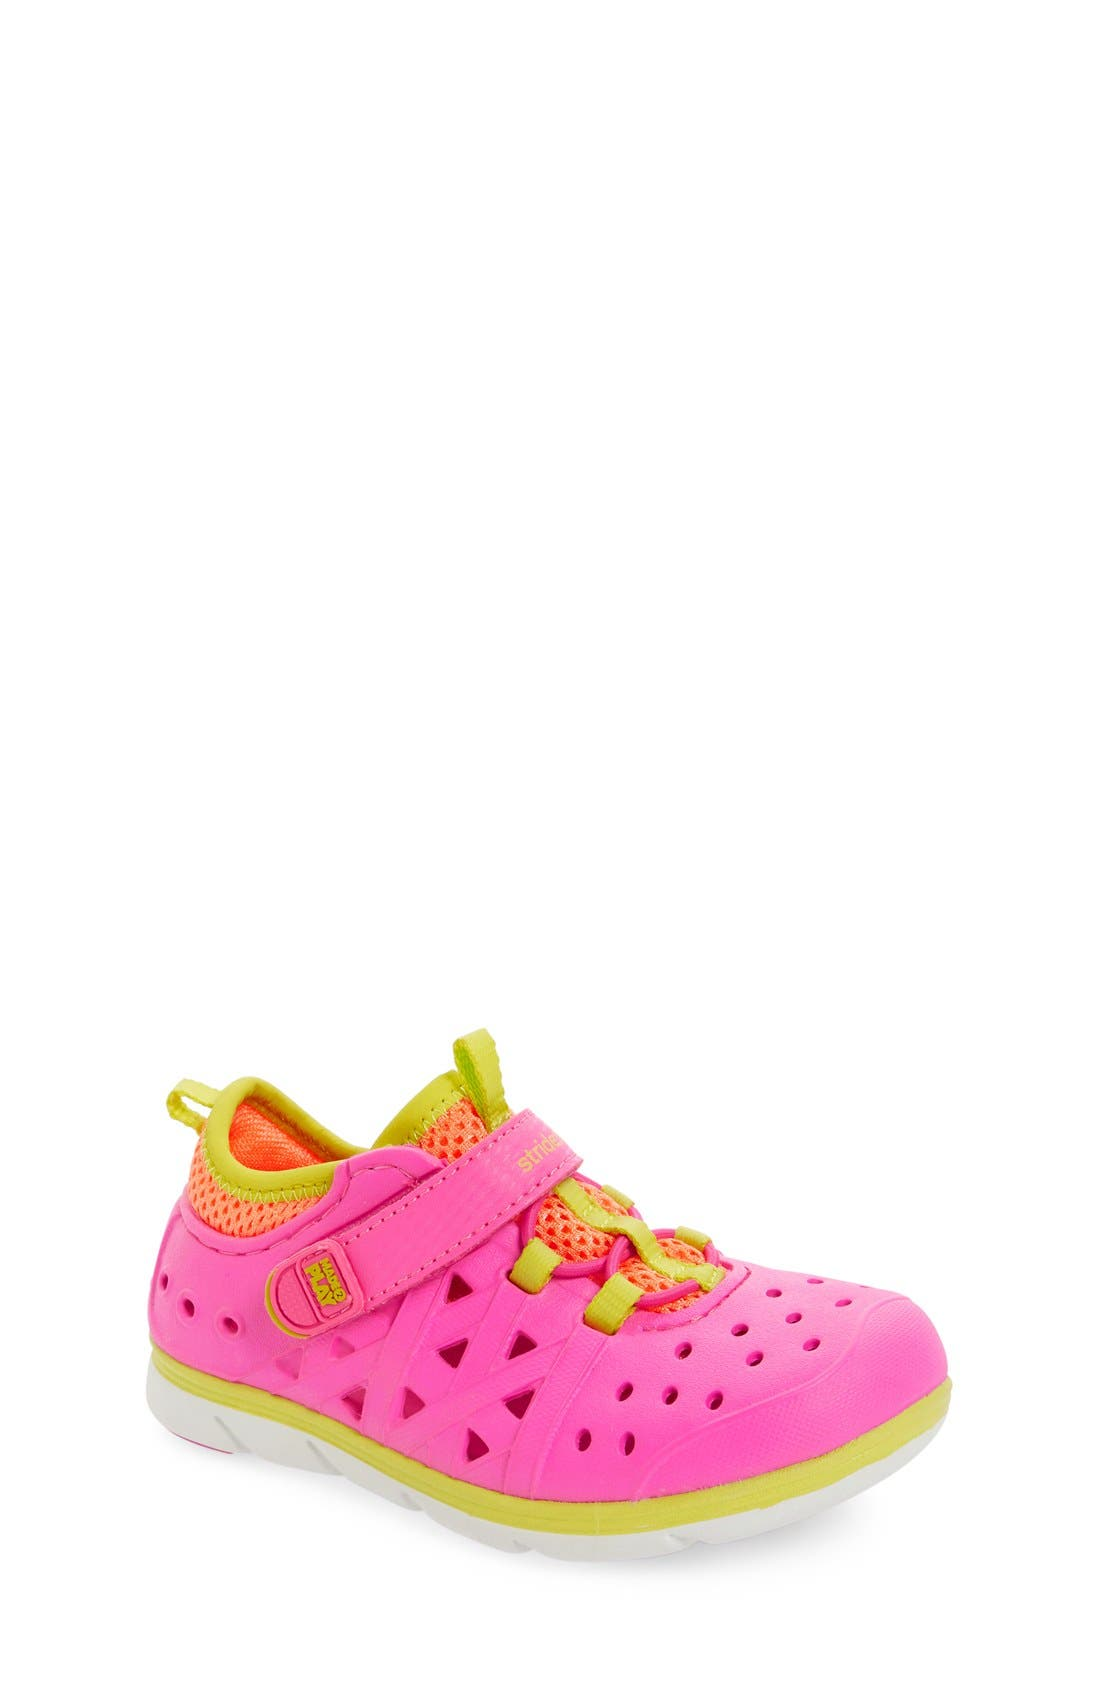 'Made2Play<sup>®</sup> - Phibian' Sneaker,                         Main,                         color, Pink